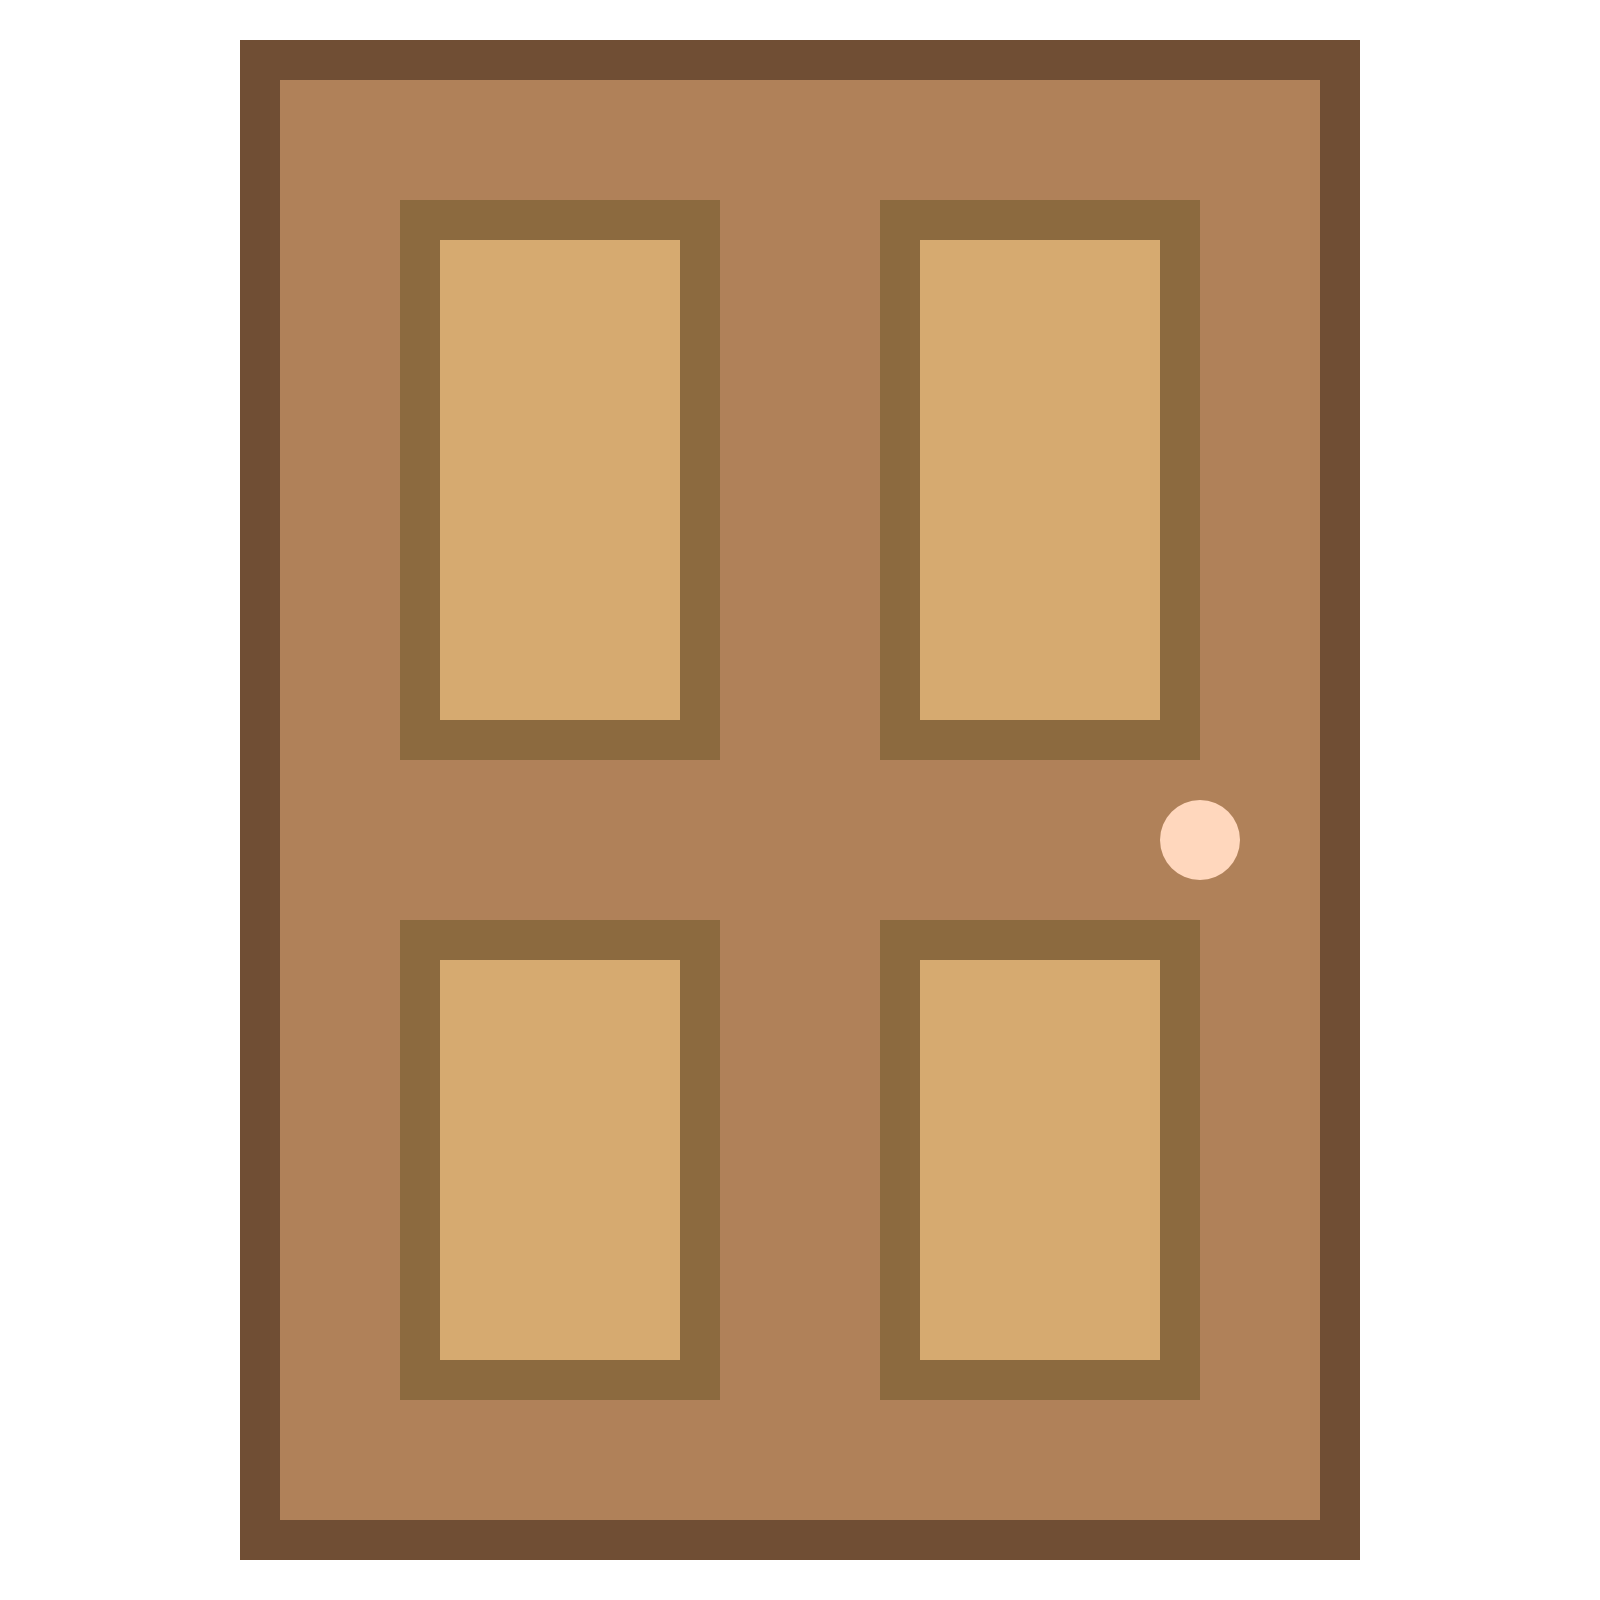 door icon download icons #15807